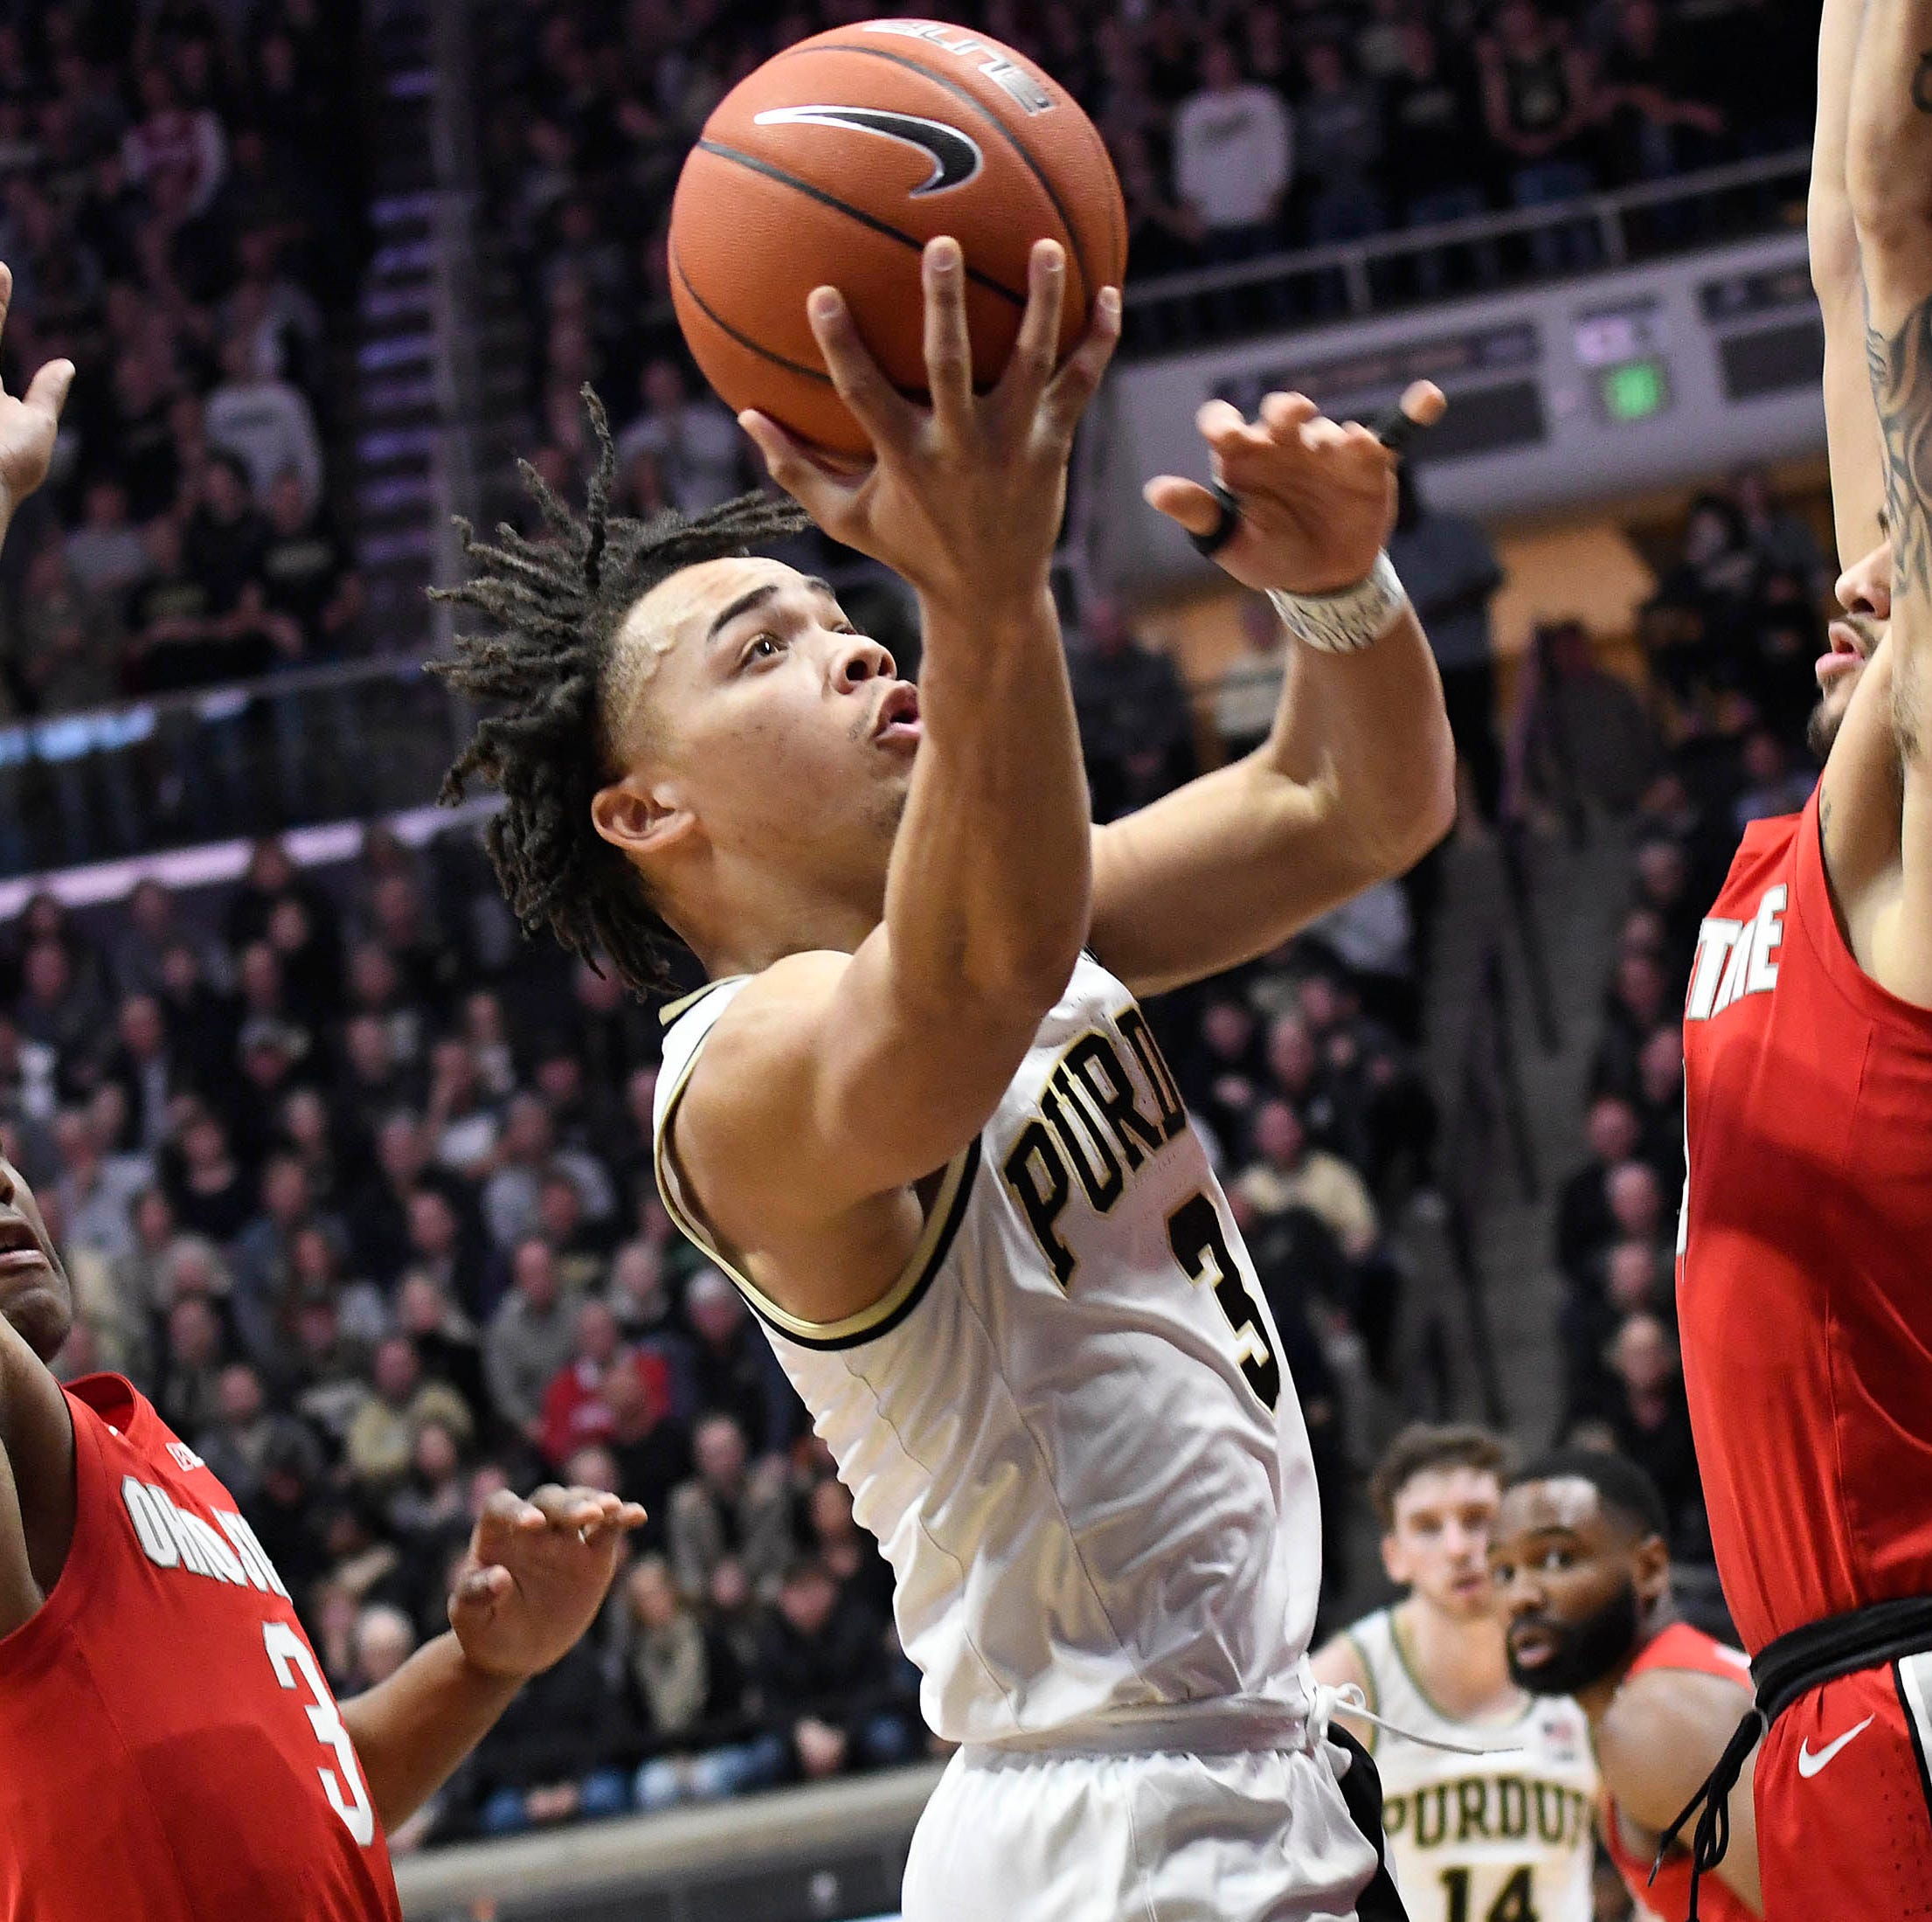 No. 14 Purdue basketball throttles Ohio State to seize sole possession of first place